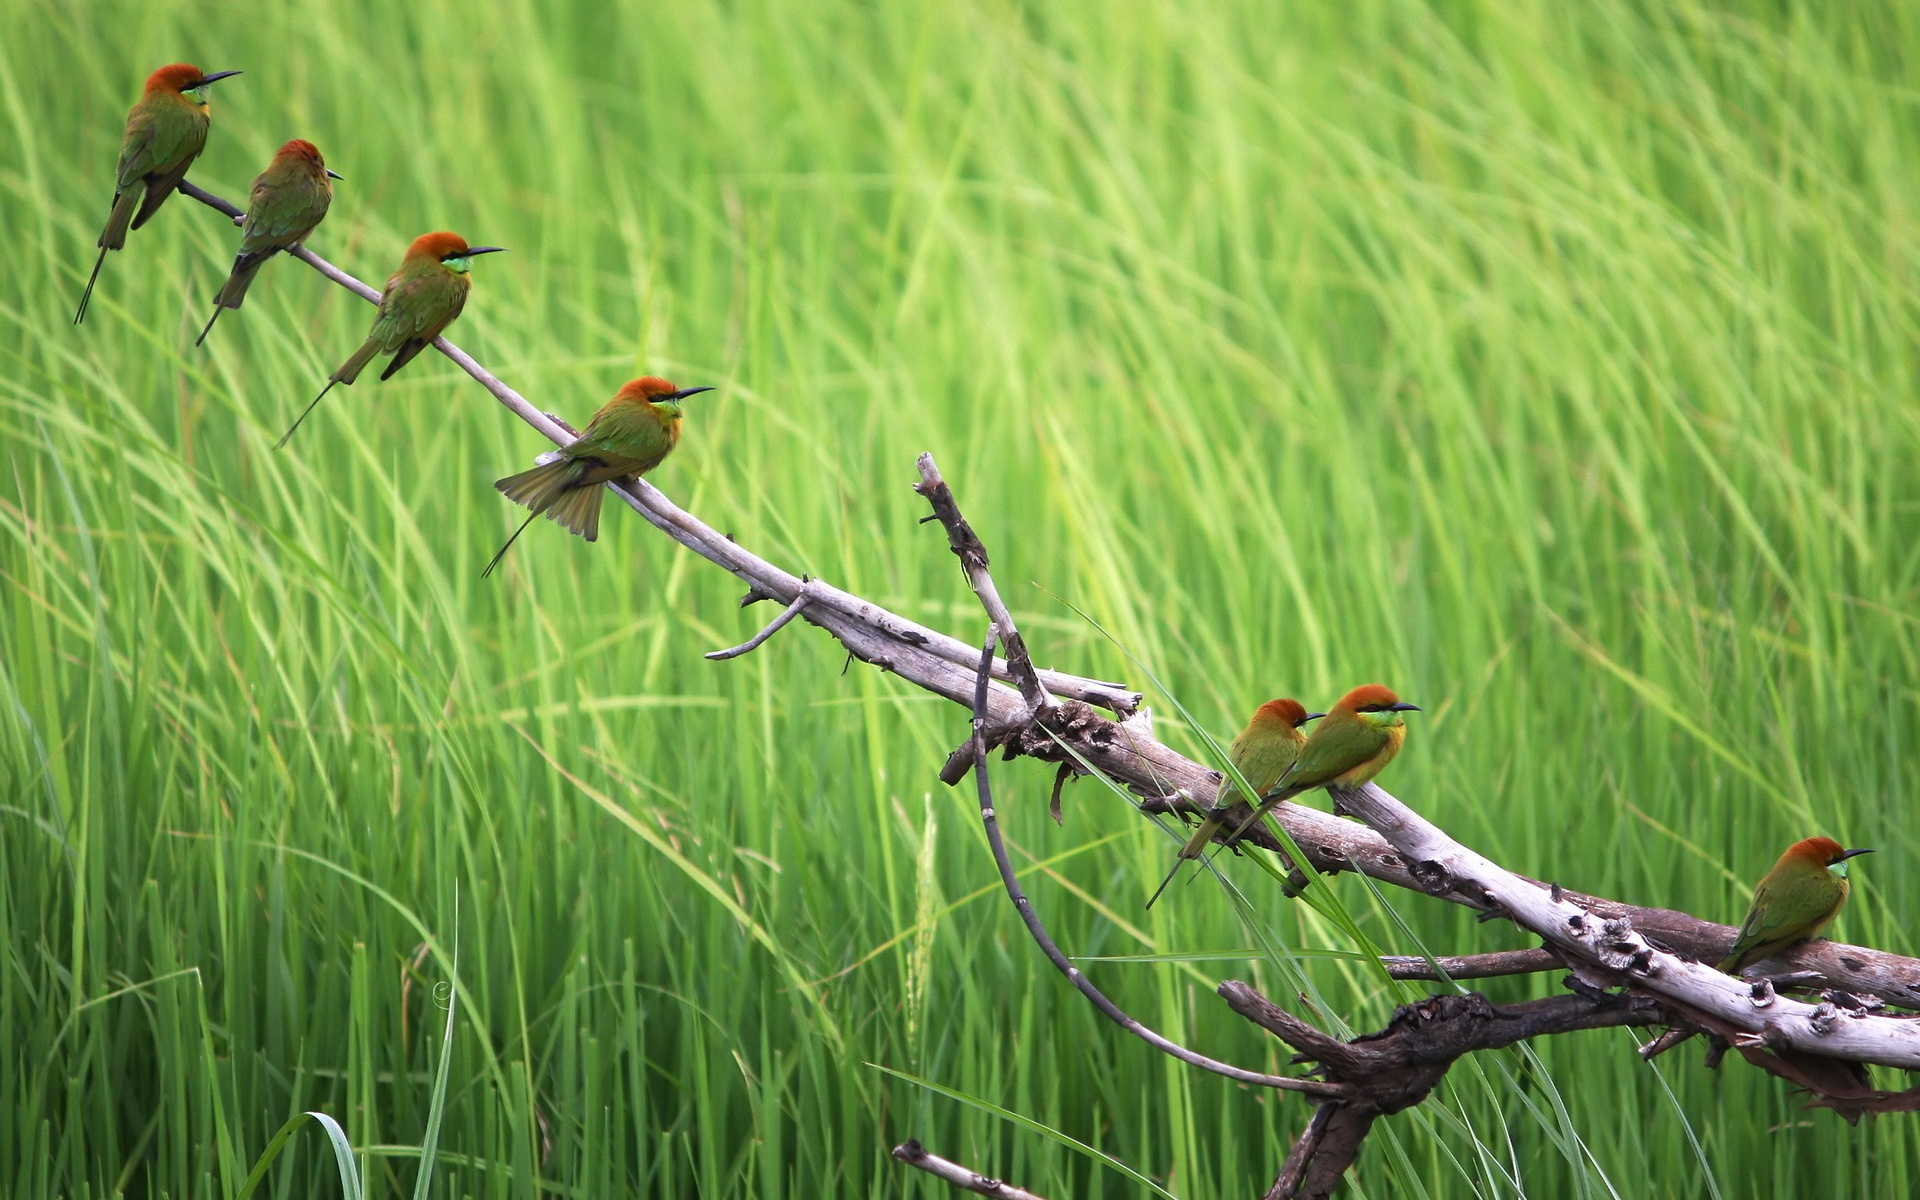 Birds and Branches Wallpaper - WallpaperSafari